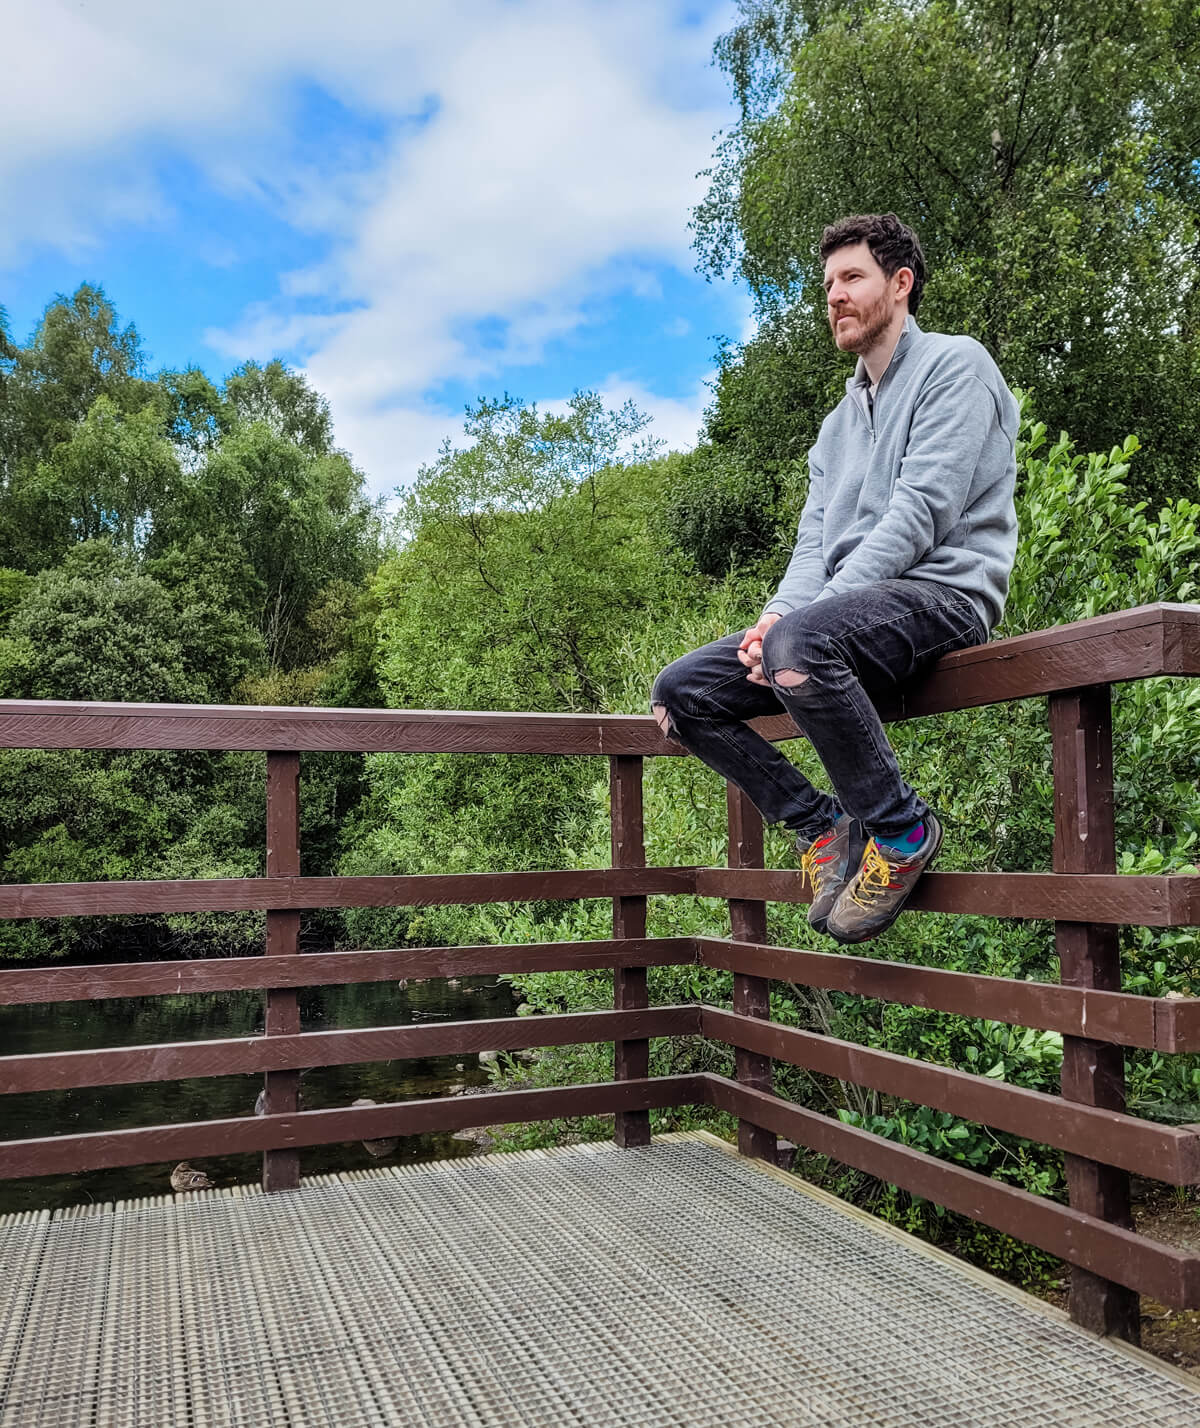 Allan sitting on the wooden deck looking out to the pond. Behind him are lush green trees and a blue sky.